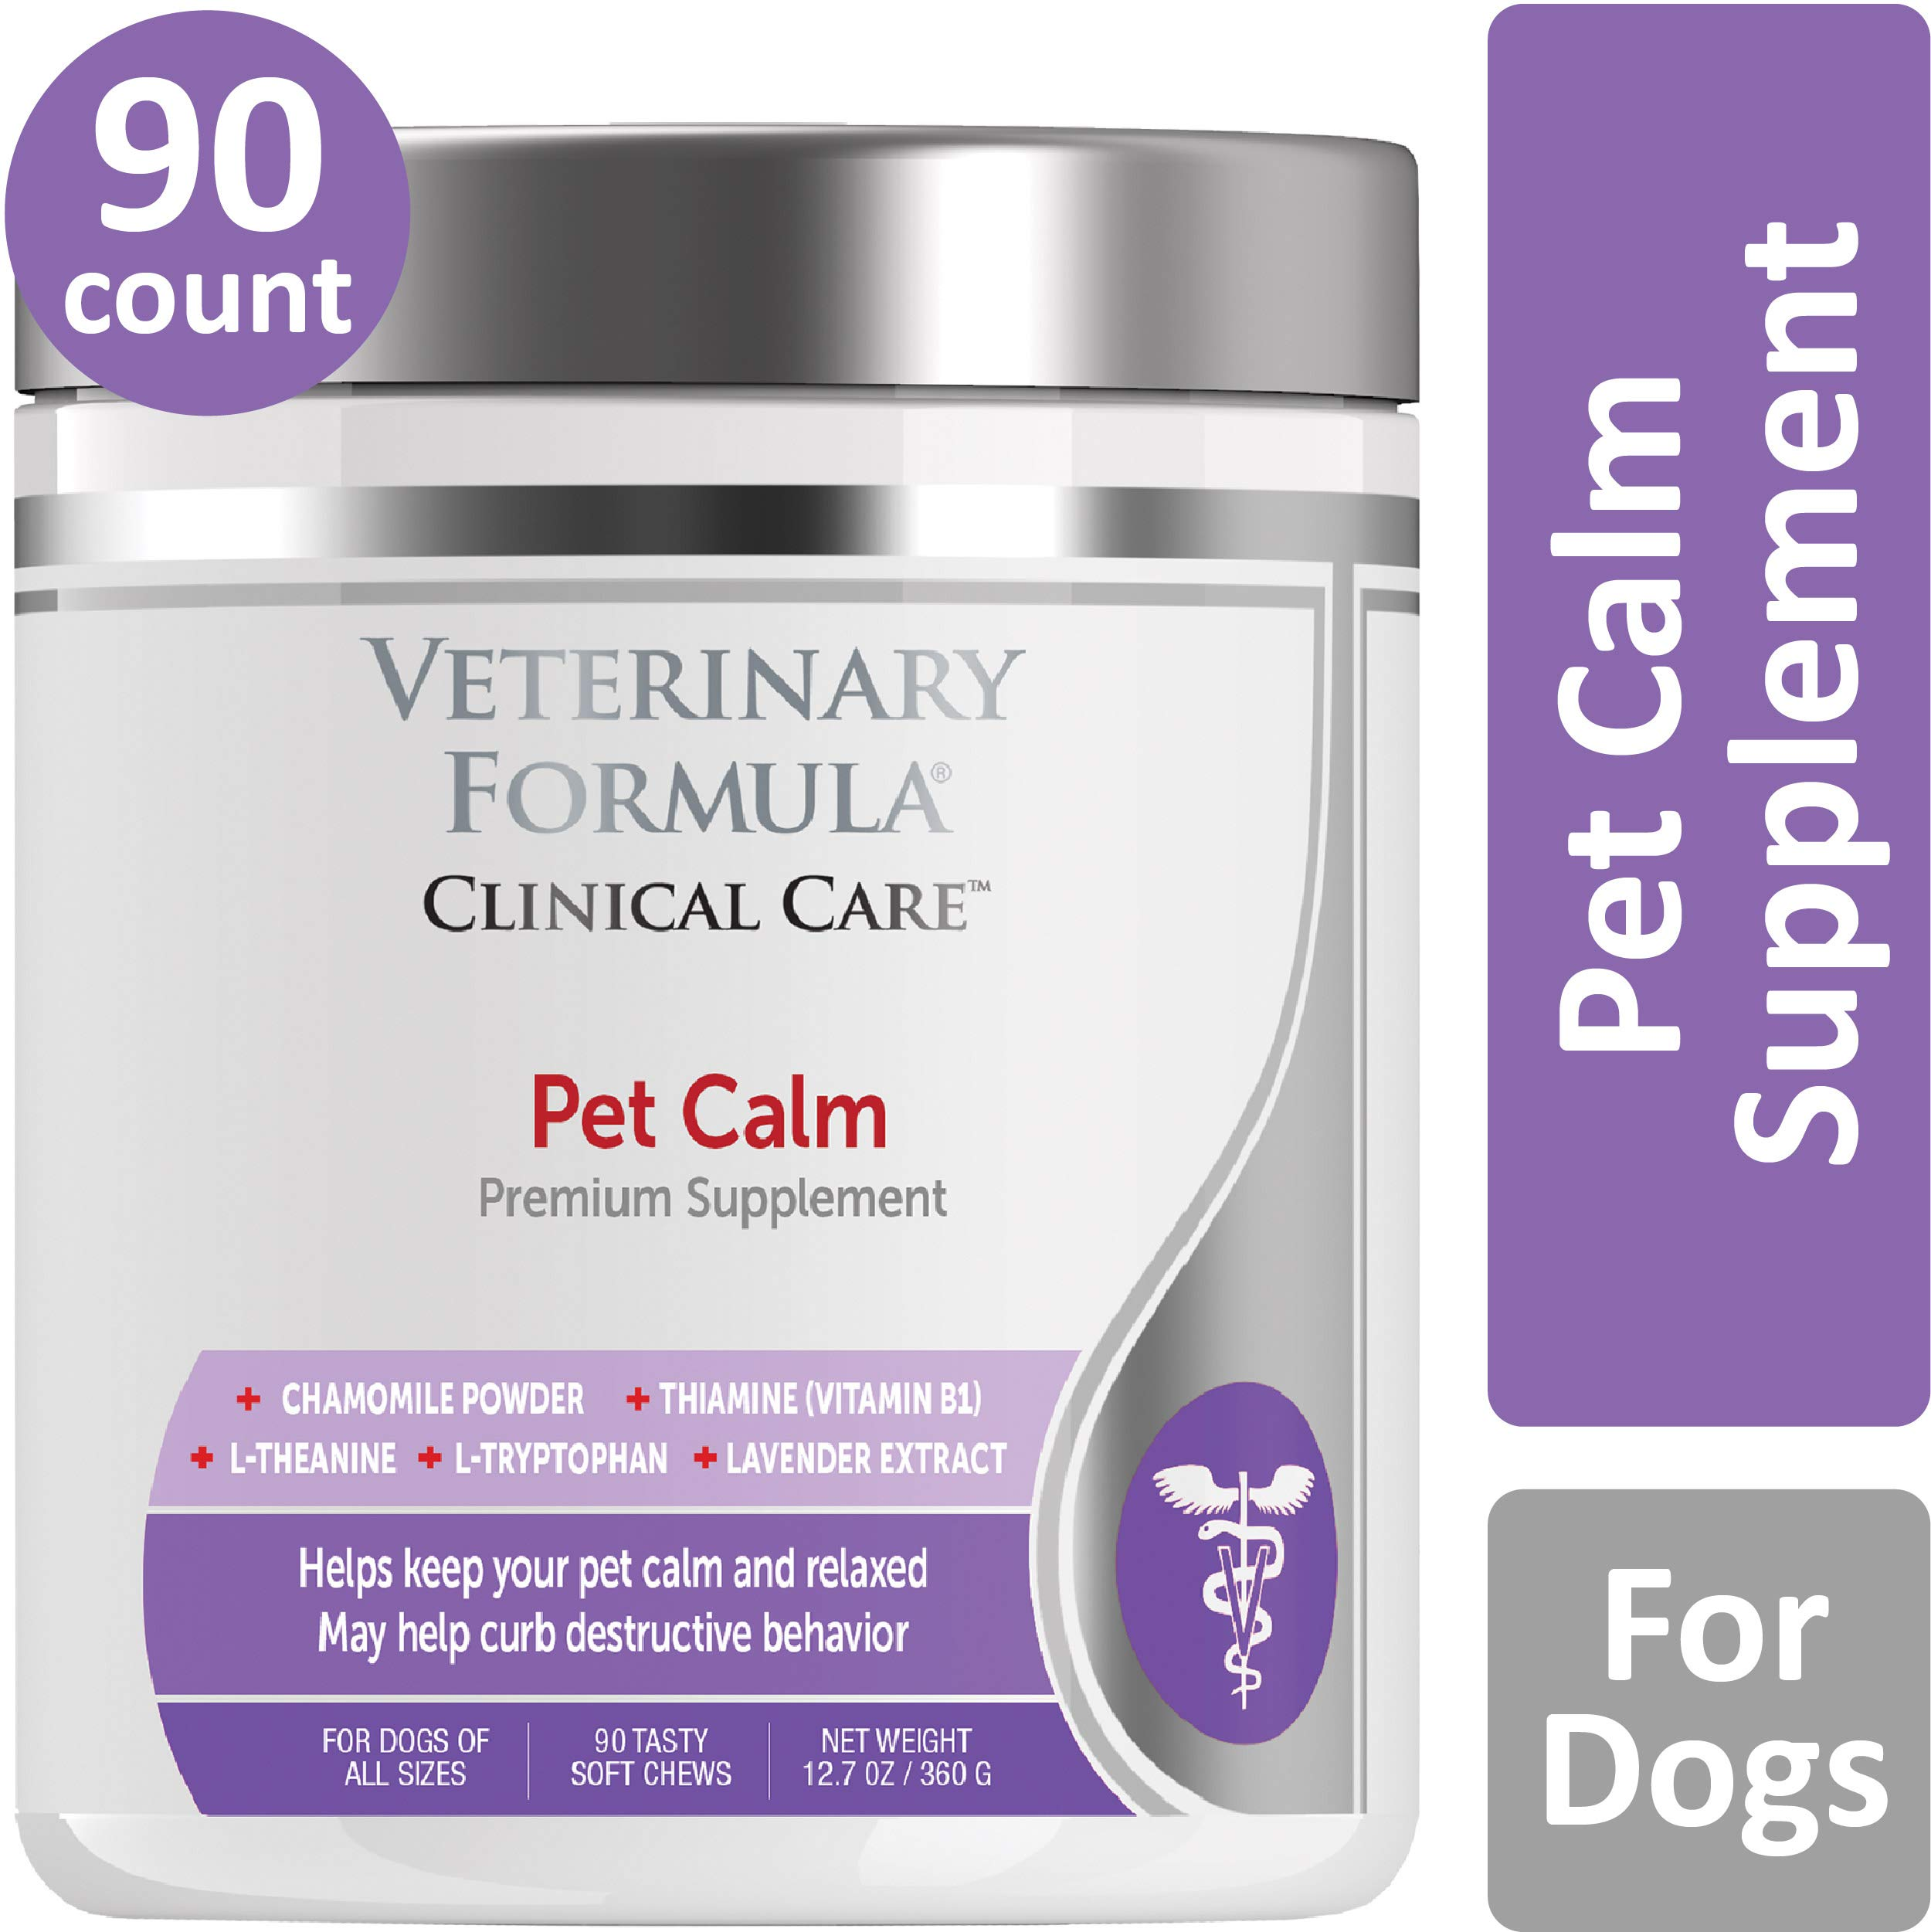 Veterinary Formula Clinical Care Premium Dog Supplement, Pet Calm, 90 Soft Chews - Pet Calming Aid, Clinically Proven Dog Supplement, Helps Reduce Hyperactivity While Promoting Relaxation by Veterinary Formula Clinical Care